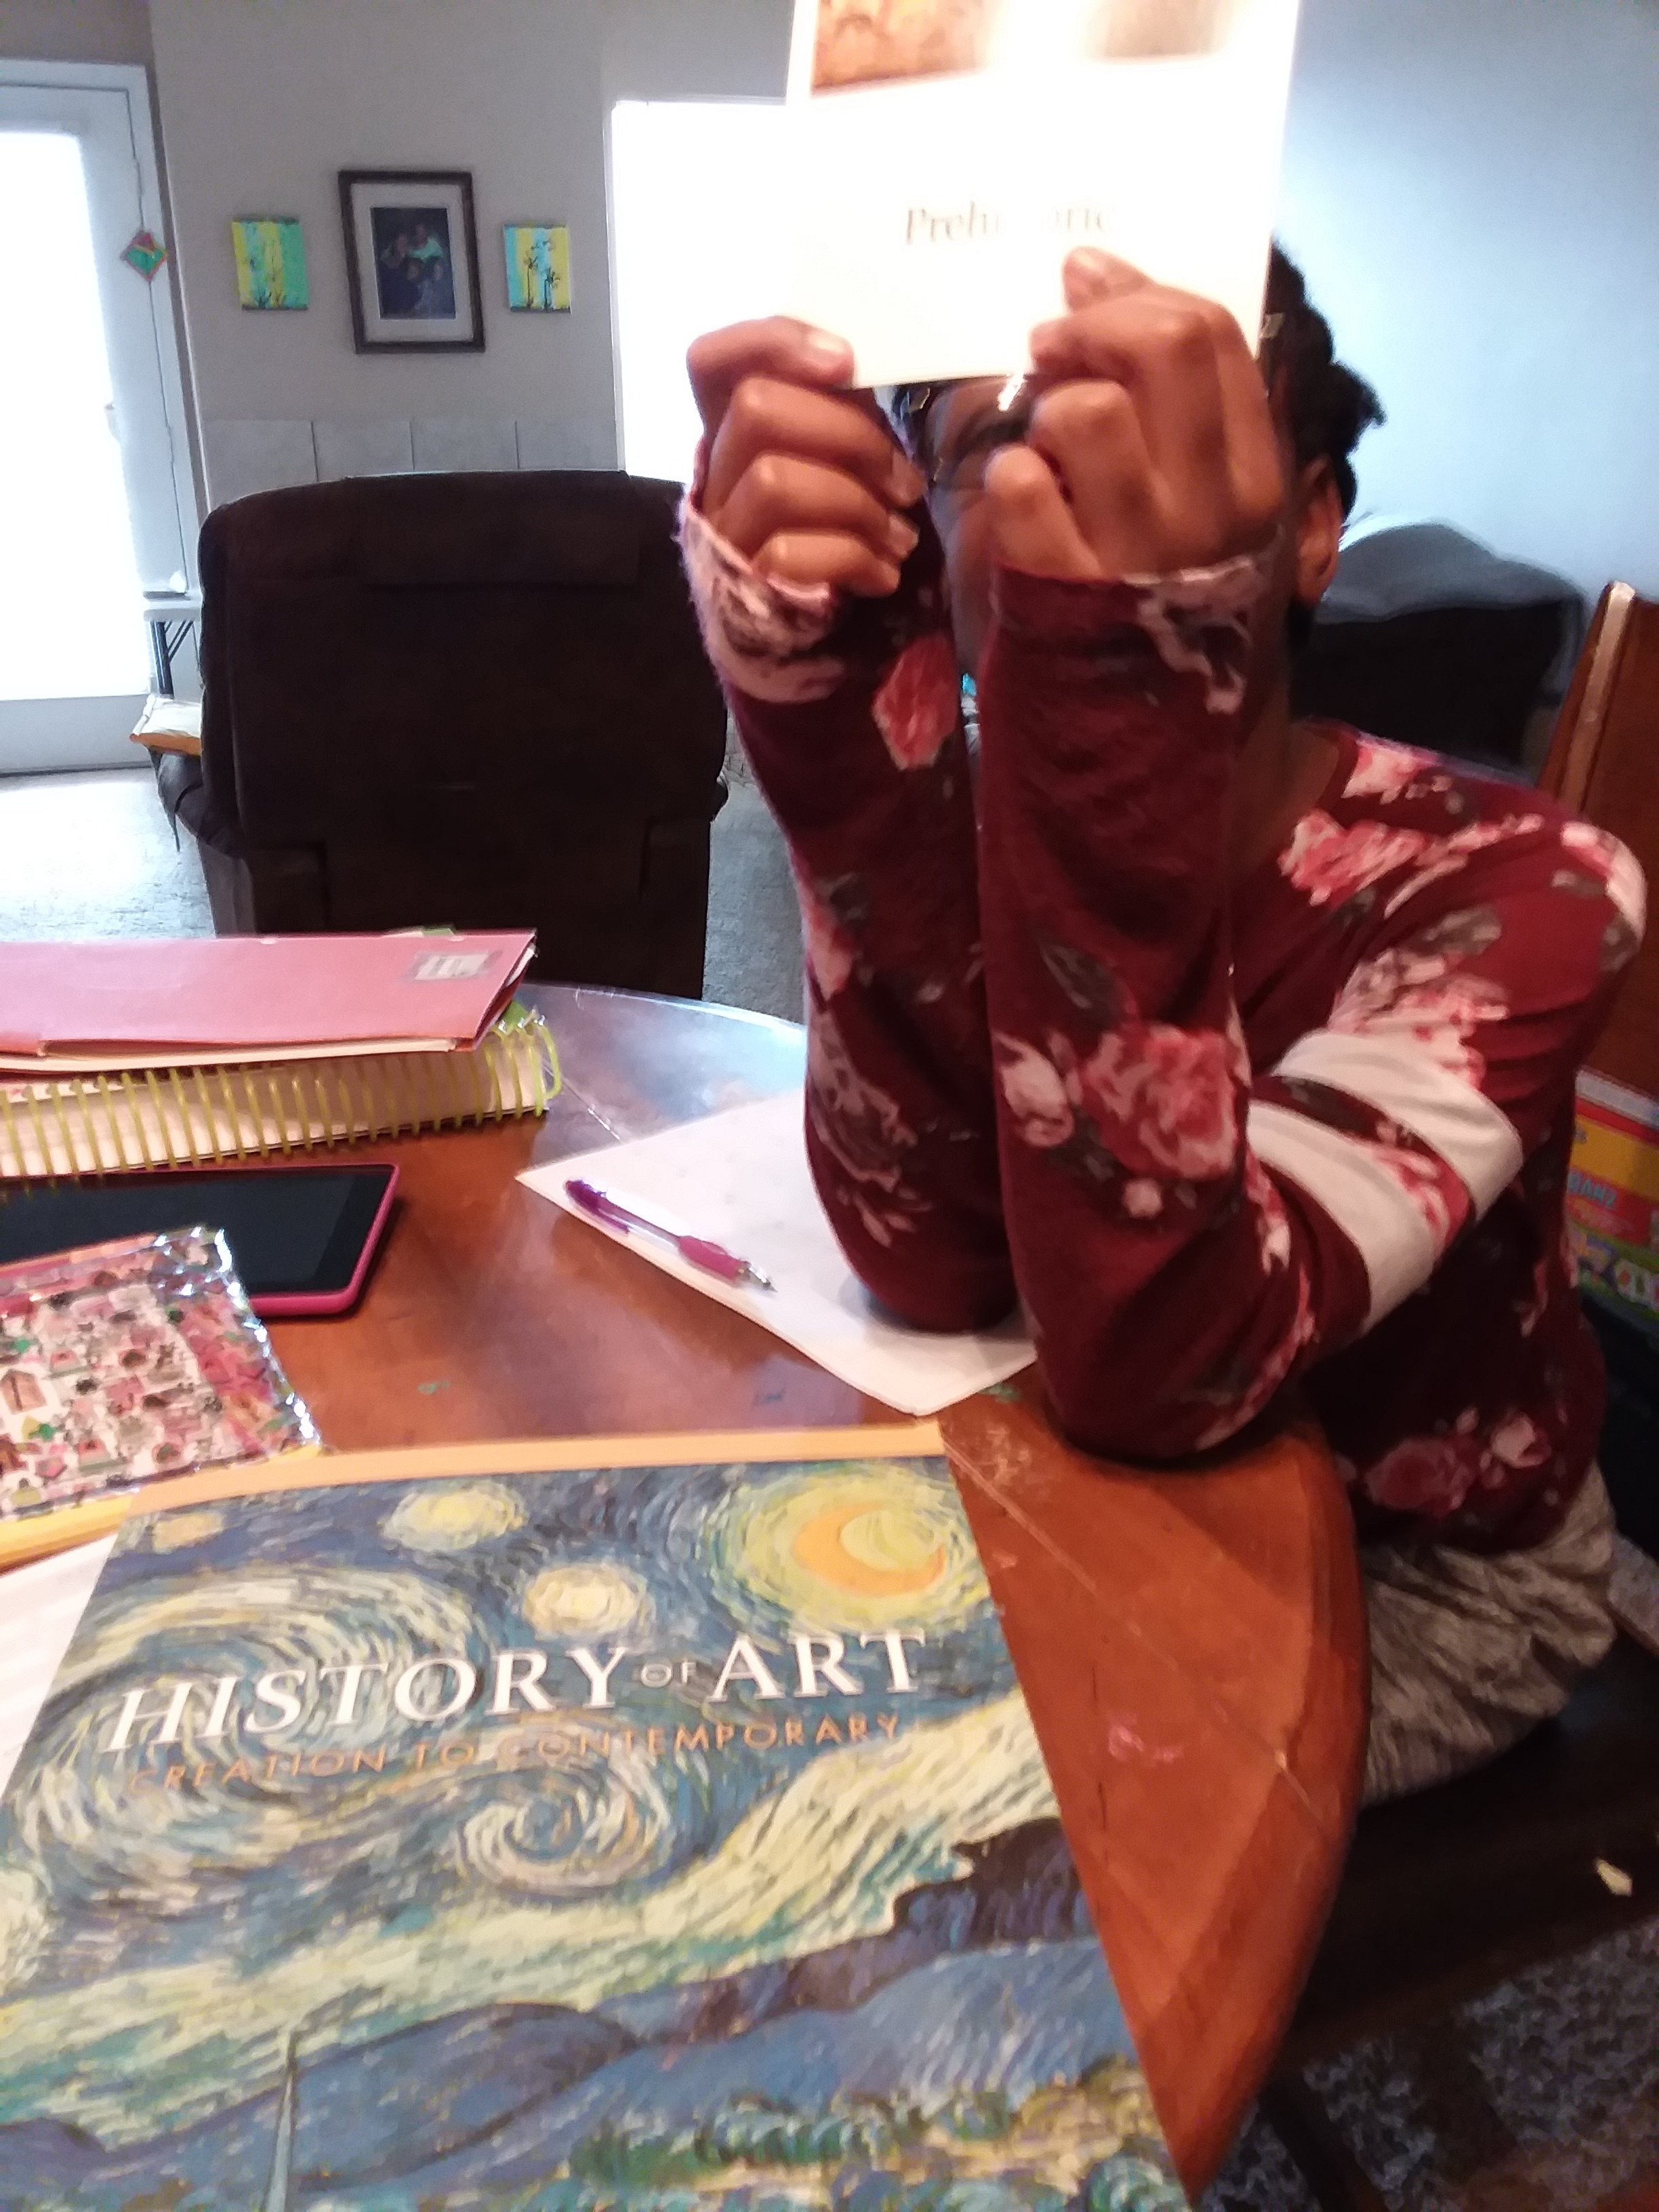 Studying art history with Veritas Press